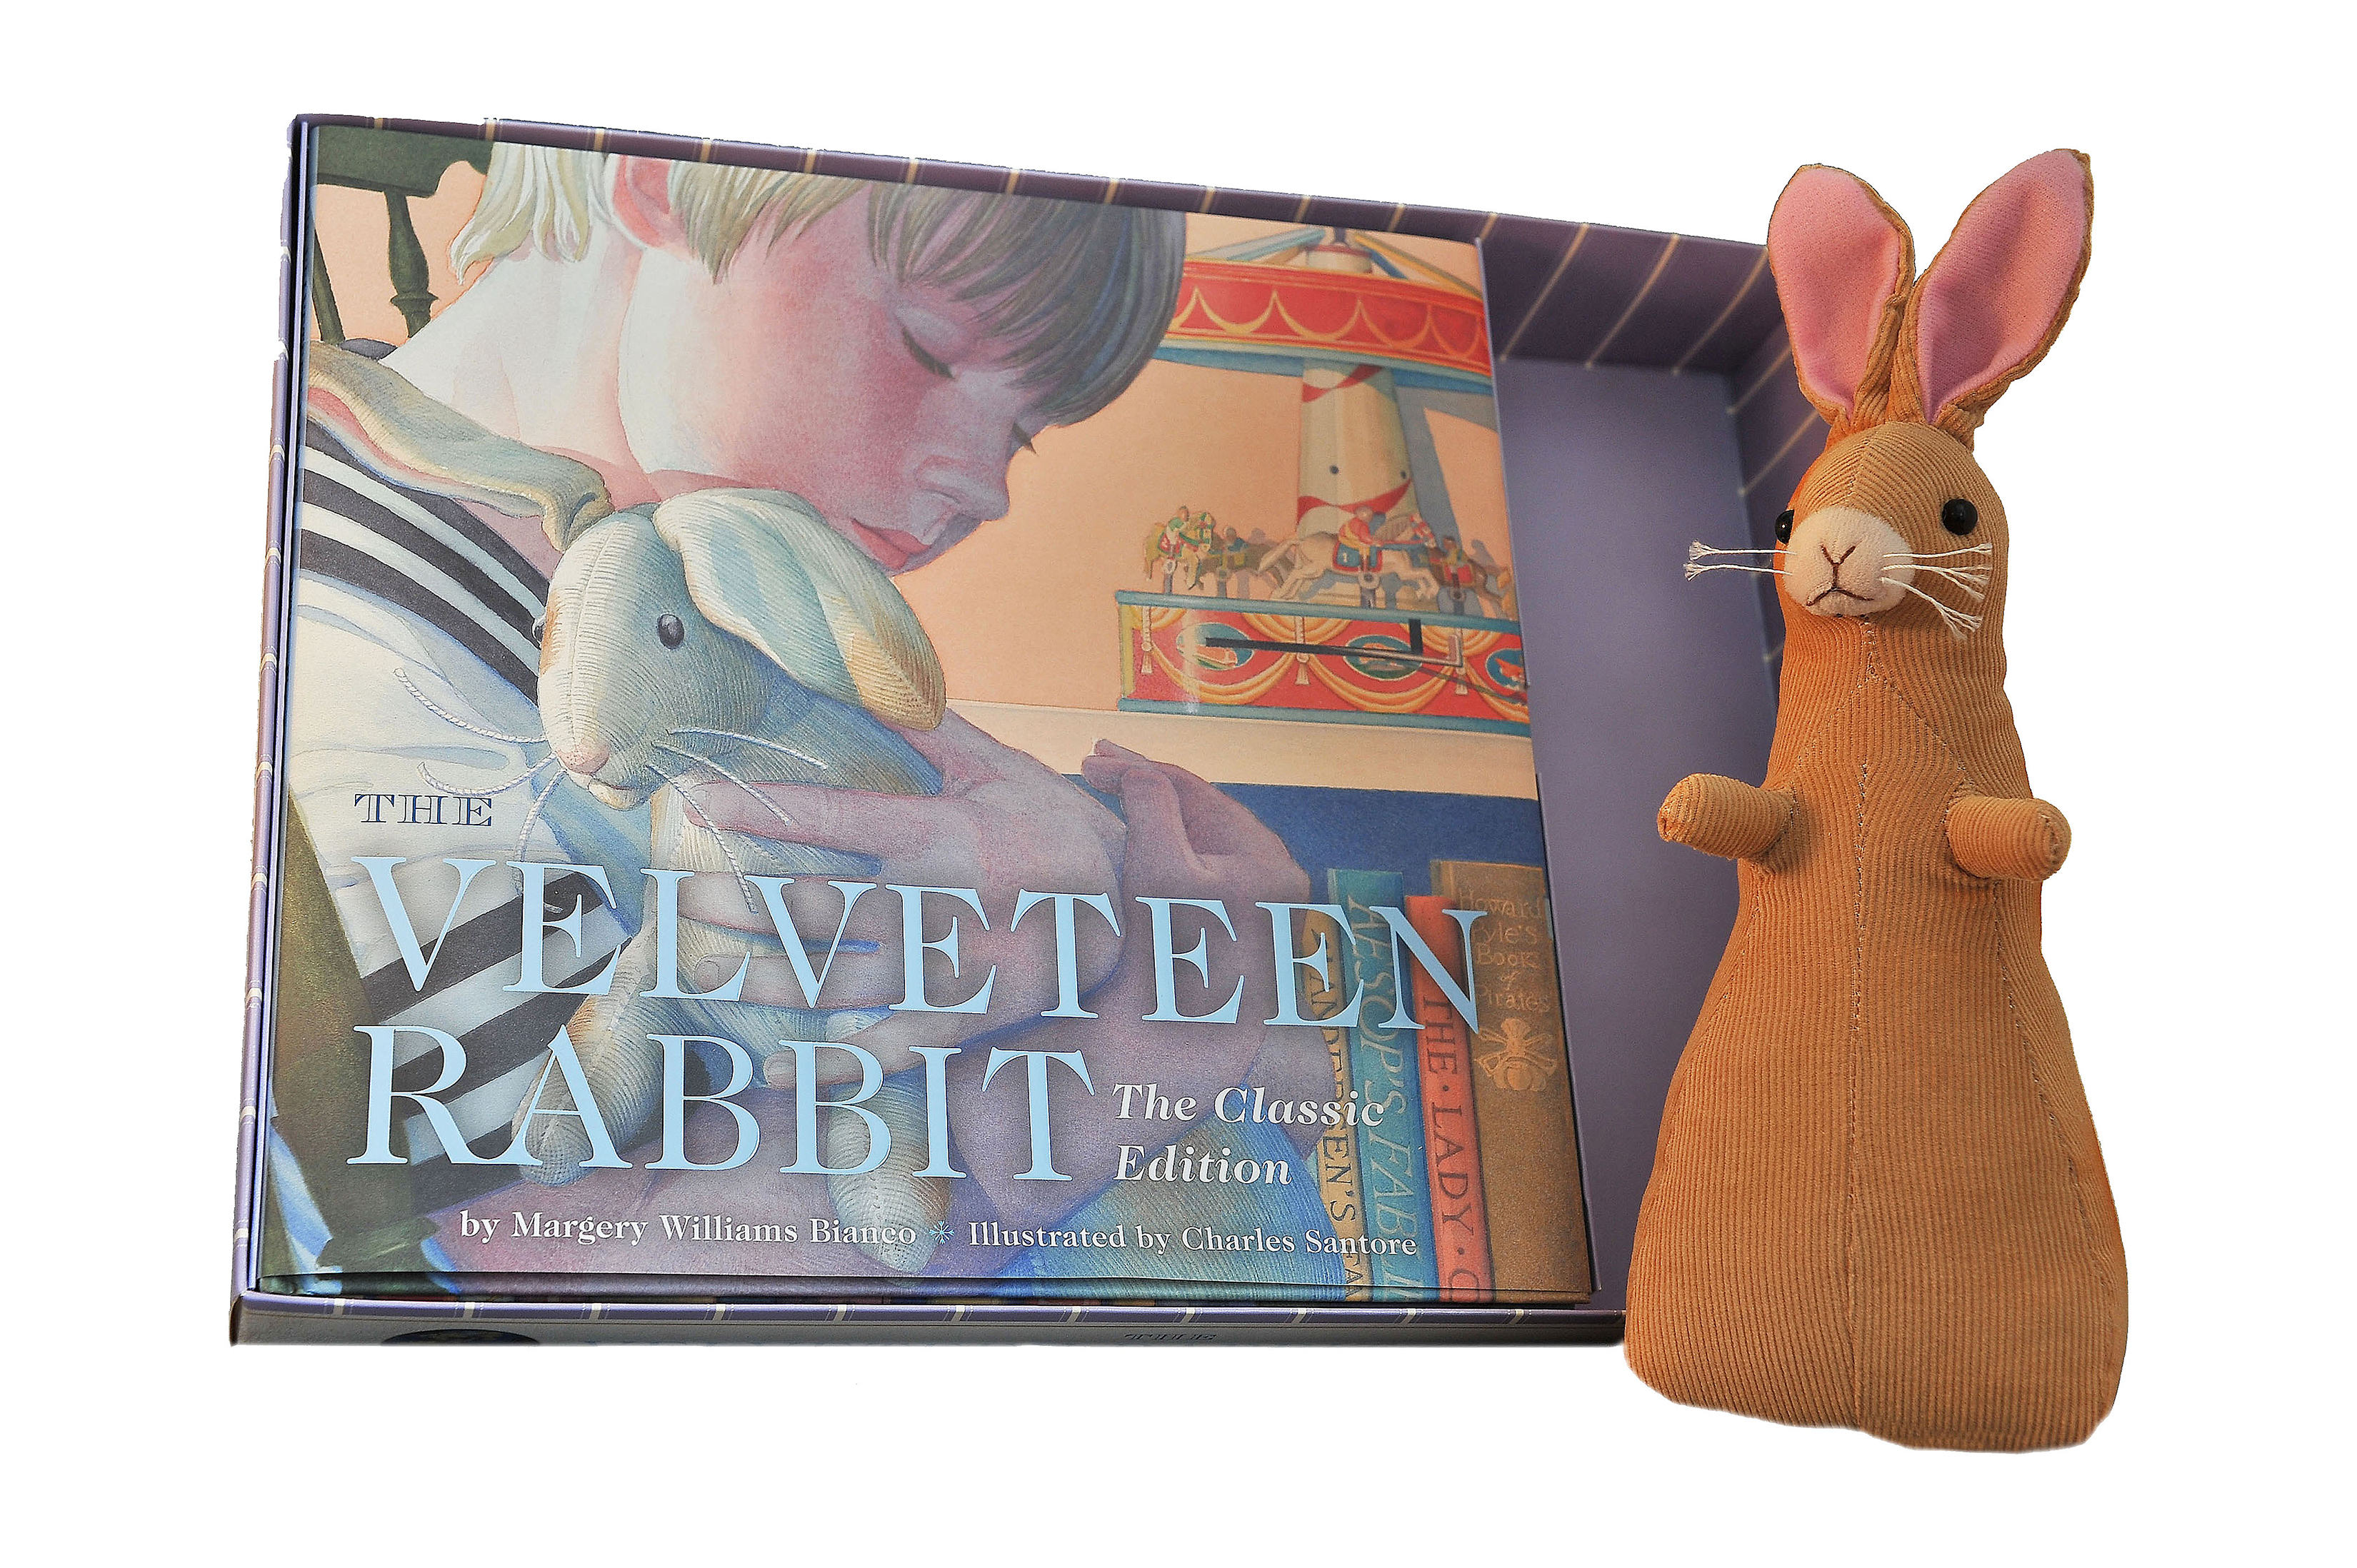 Velveteen-rabbit-gift-set-9781604333350_hr